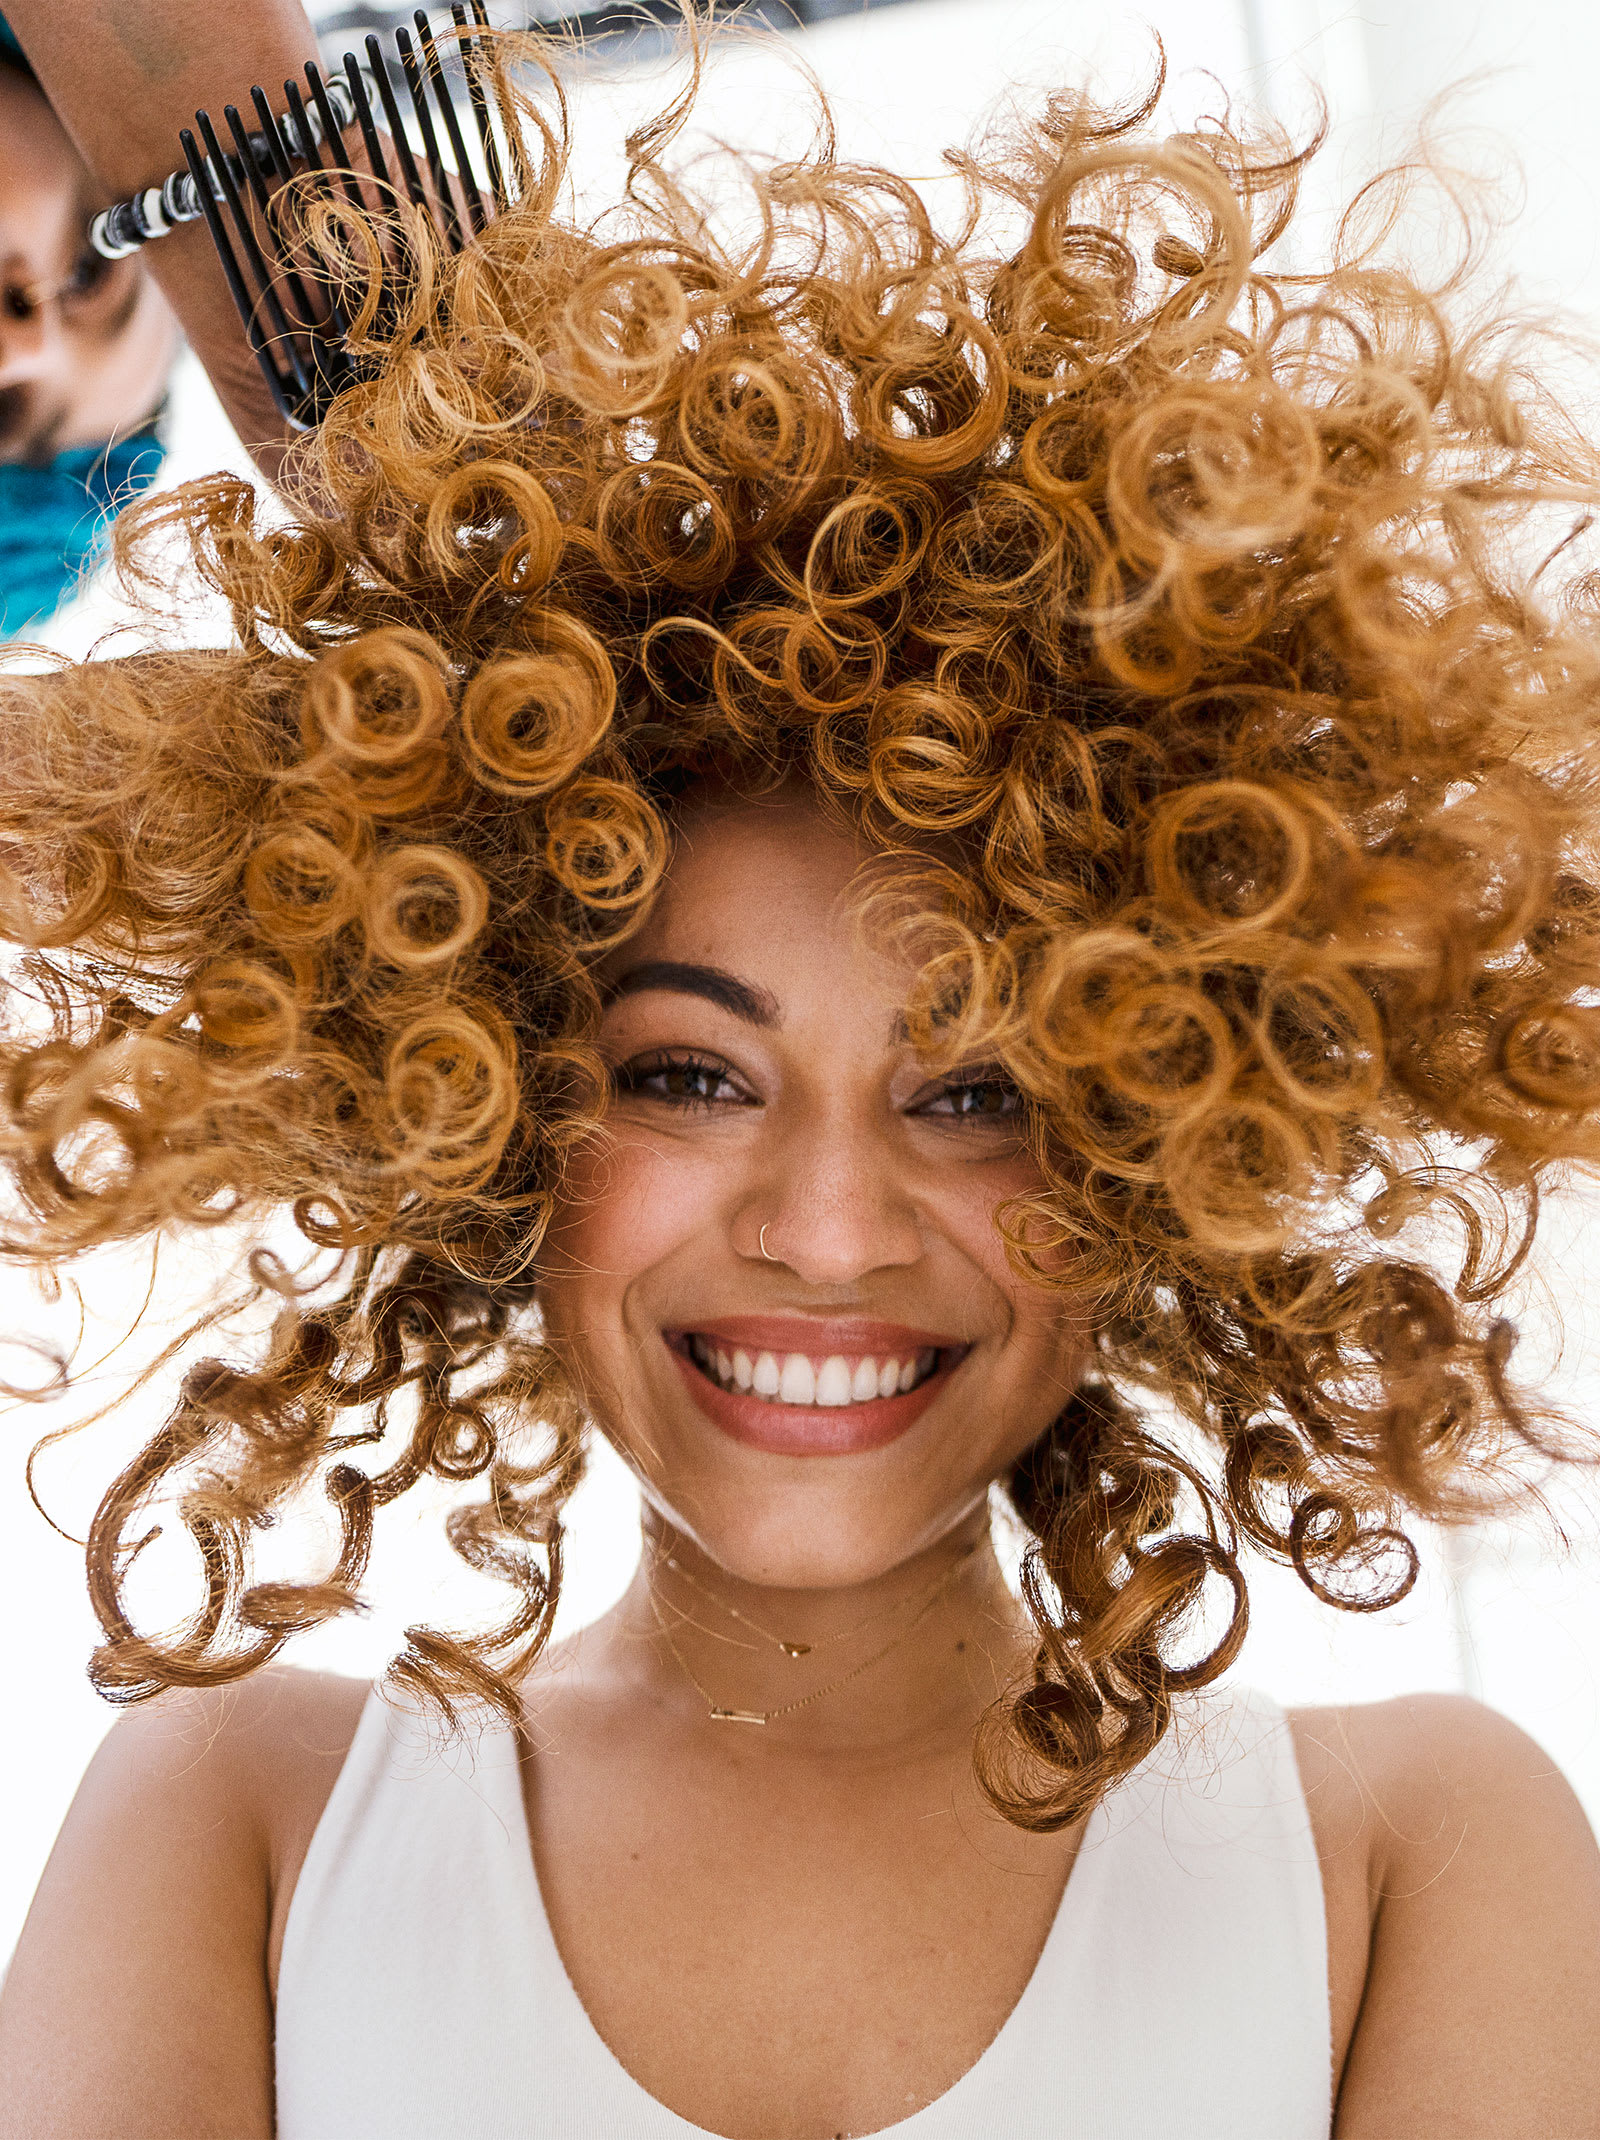 hair stylist with hands in woman's curly hair